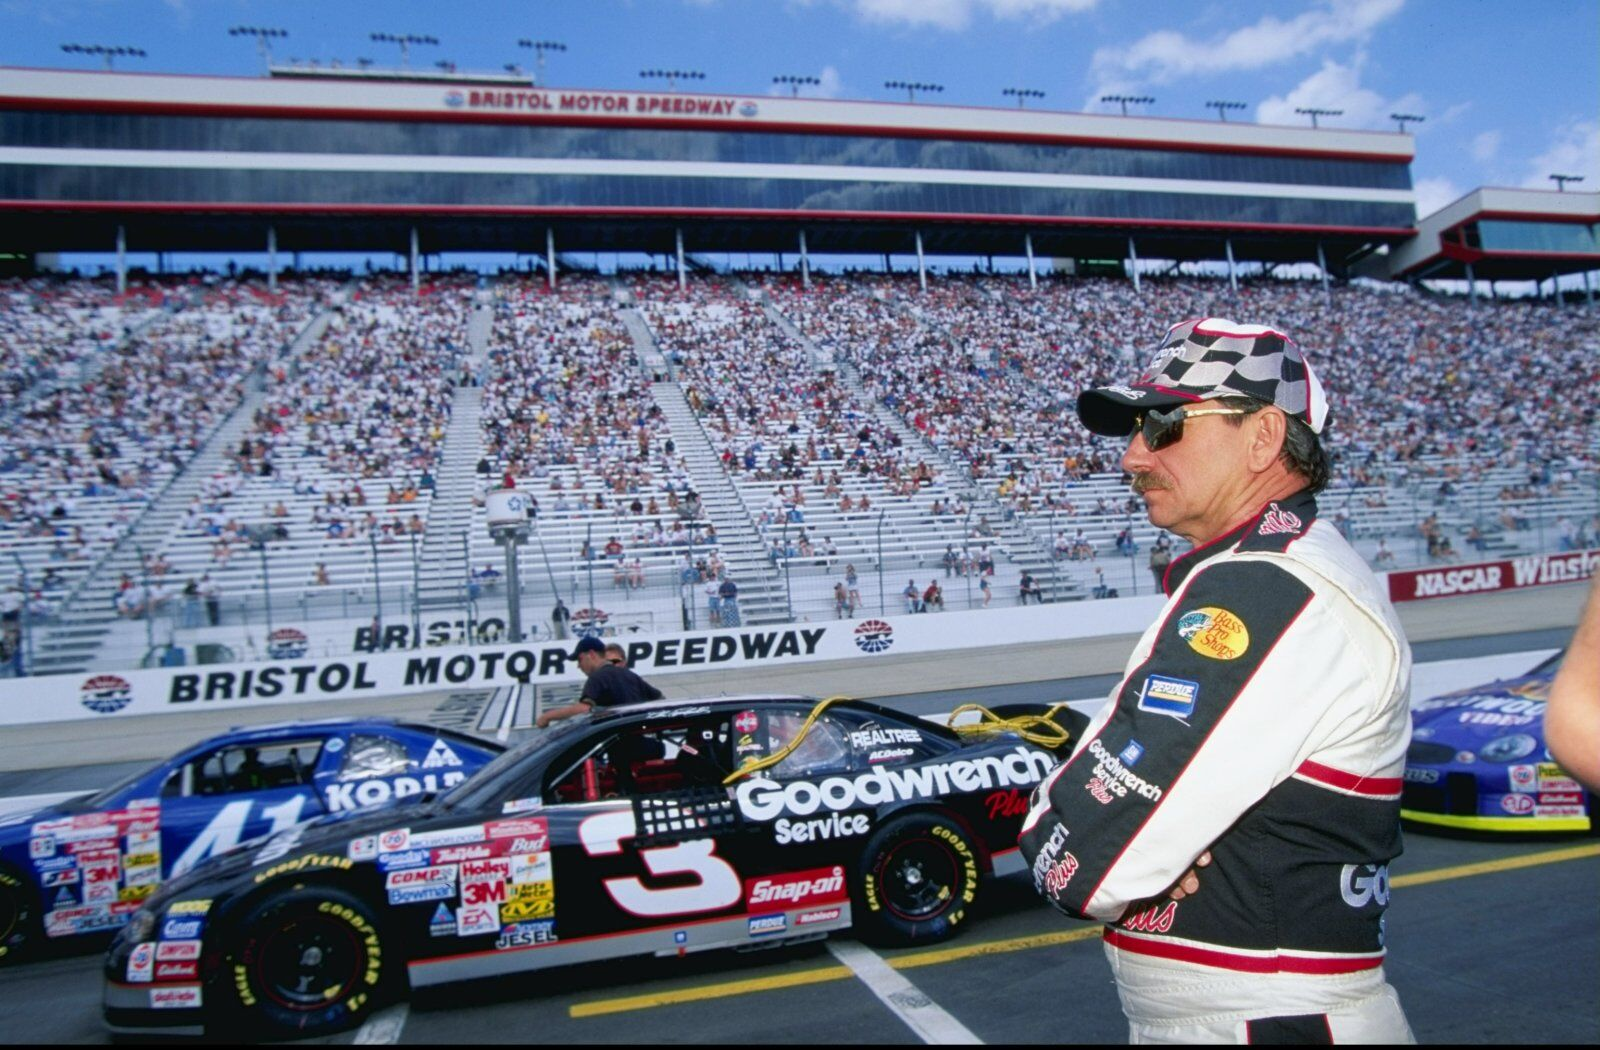 NASCAR: The two active drivers who competed against Dale Earnhardt